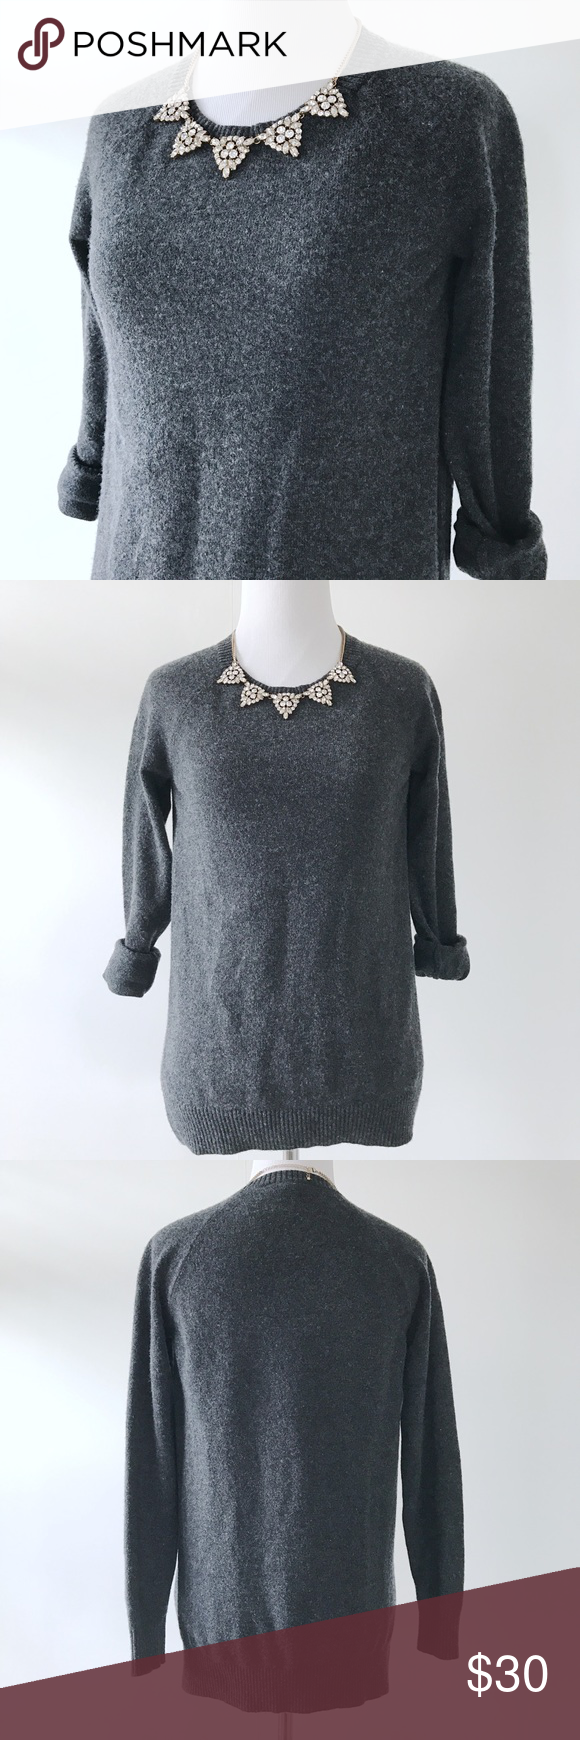 """❥ Ann Taylor Sweater Tunic Ann Taylor sweater tunic in dark grey. Very soft and comfy, goes well with leggings or skinny jeans. Add a colorful scarf or a statement necklace to pop :)  Size: XS Condition: NWOT Bust 16.5"""" / Length 25"""" measured flat  ⋆ Welcome offers, bundles, and questions ⋆⋆ Please don't ask for trade or lowest ⋆⋆⋆ Ships within 1-2 business days ⋆⋆⋆⋆ Instagram: Missoh_J  Please check the sizing before purchasing. Leaving negative reviews due to missed size is unfair to the…"""